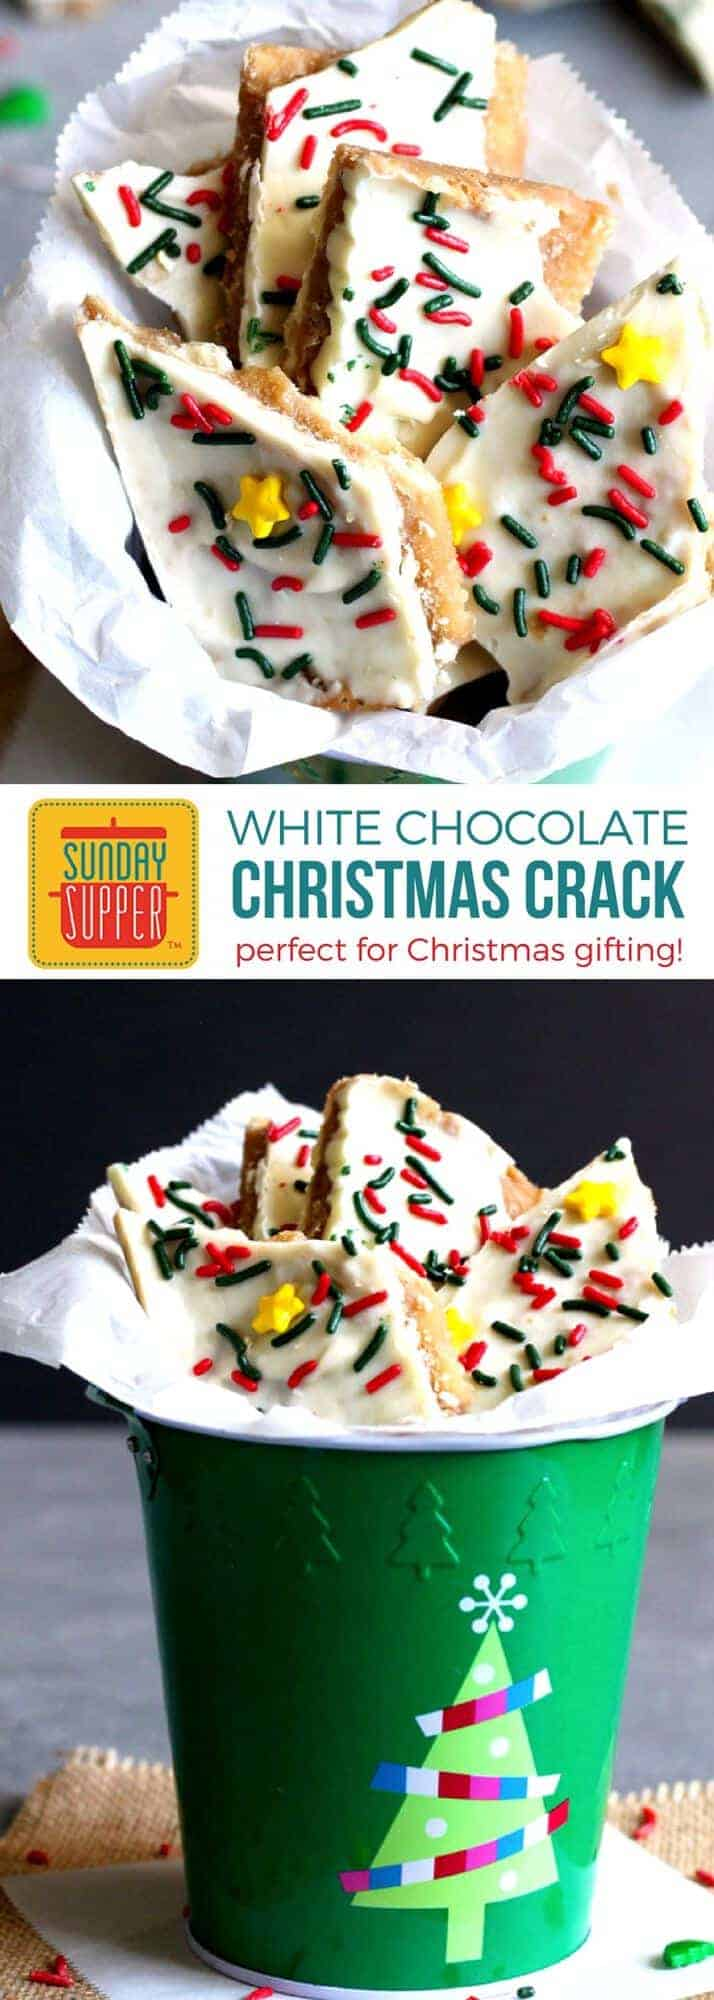 Our White Chocolate Christmas Crack Recipe is the EASIEST and most addicting treat you will make this holiday season. These treats will pack nicely in a little goodie bag tied up with a pretty bow, PERFECT forHomemade Holiday Food Giftsfor Christmas gifting or adding to your list of Buffet Menu Ideas for a quick dessert option! Kids and adults alike will LOVE this White Chocolate Christmas Crack!! #holidayrecipes #christmasrecipes #foodgift #easyrecipe #SundaySupper